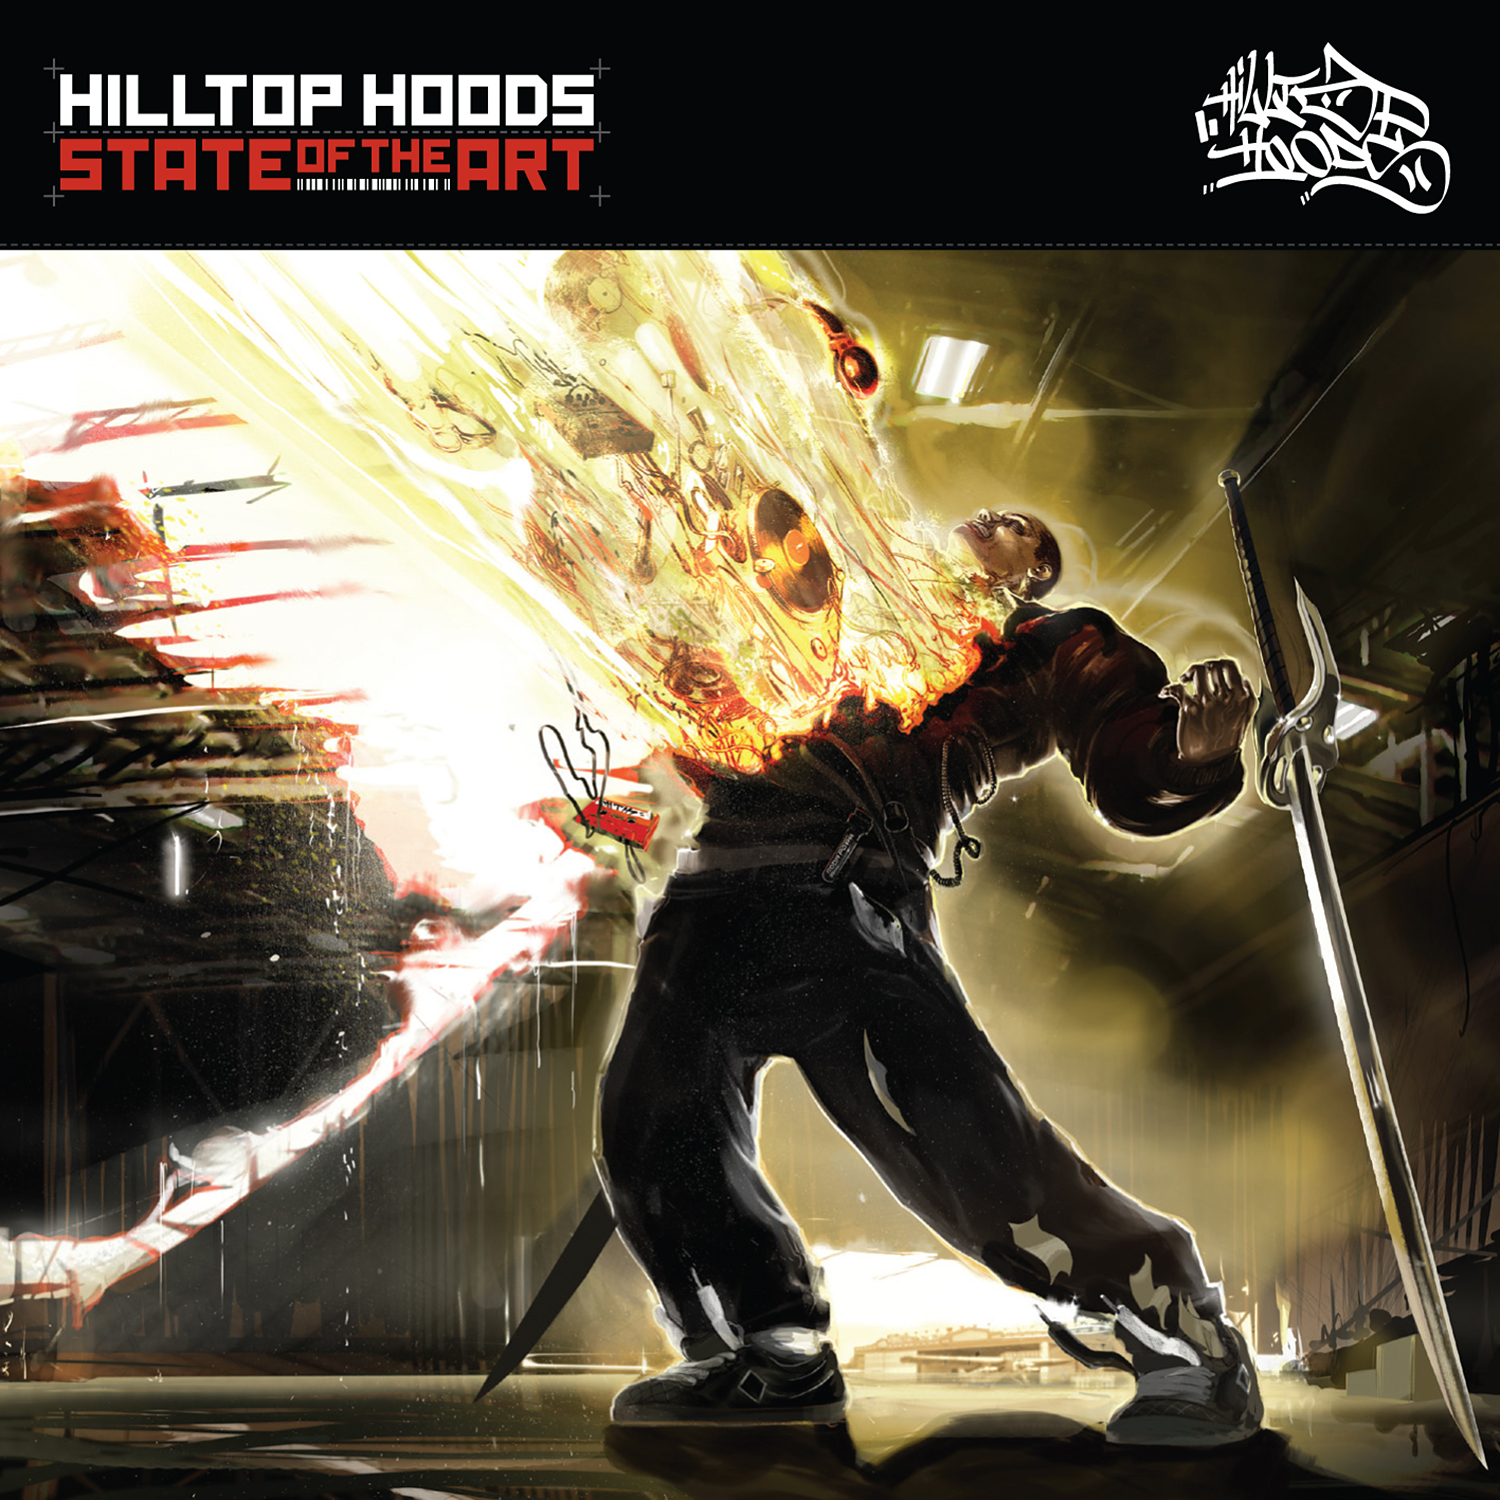 HILLTOP HOODS: STATE OF THE ART